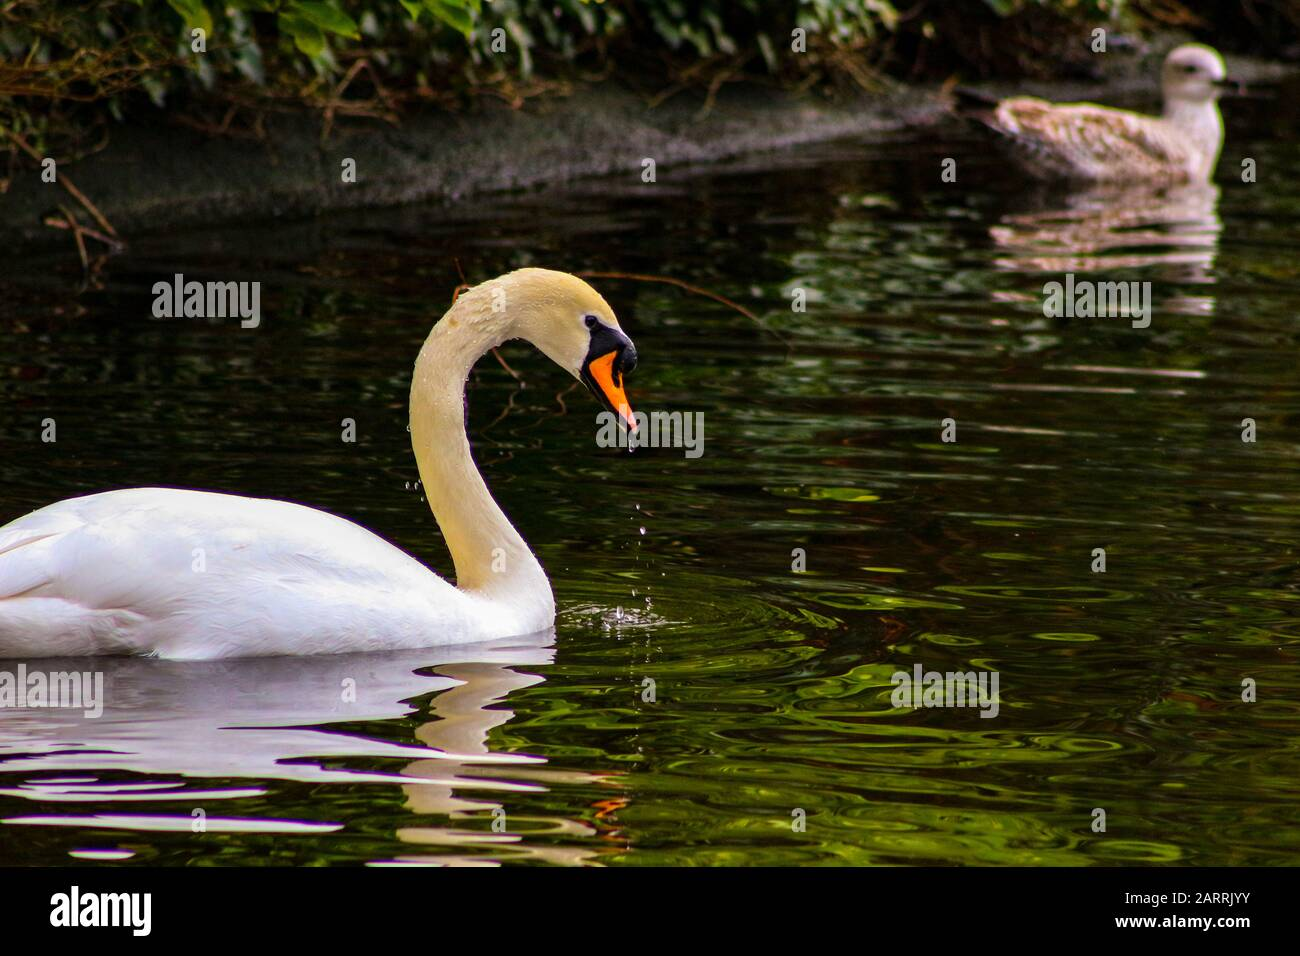 Mute swan cygnets, Cygnus olor, watched over by pen and cob, swimming in Grand Canal, Dublin, Ireland. Four young fluffy baby swans with soft down in Stock Photo